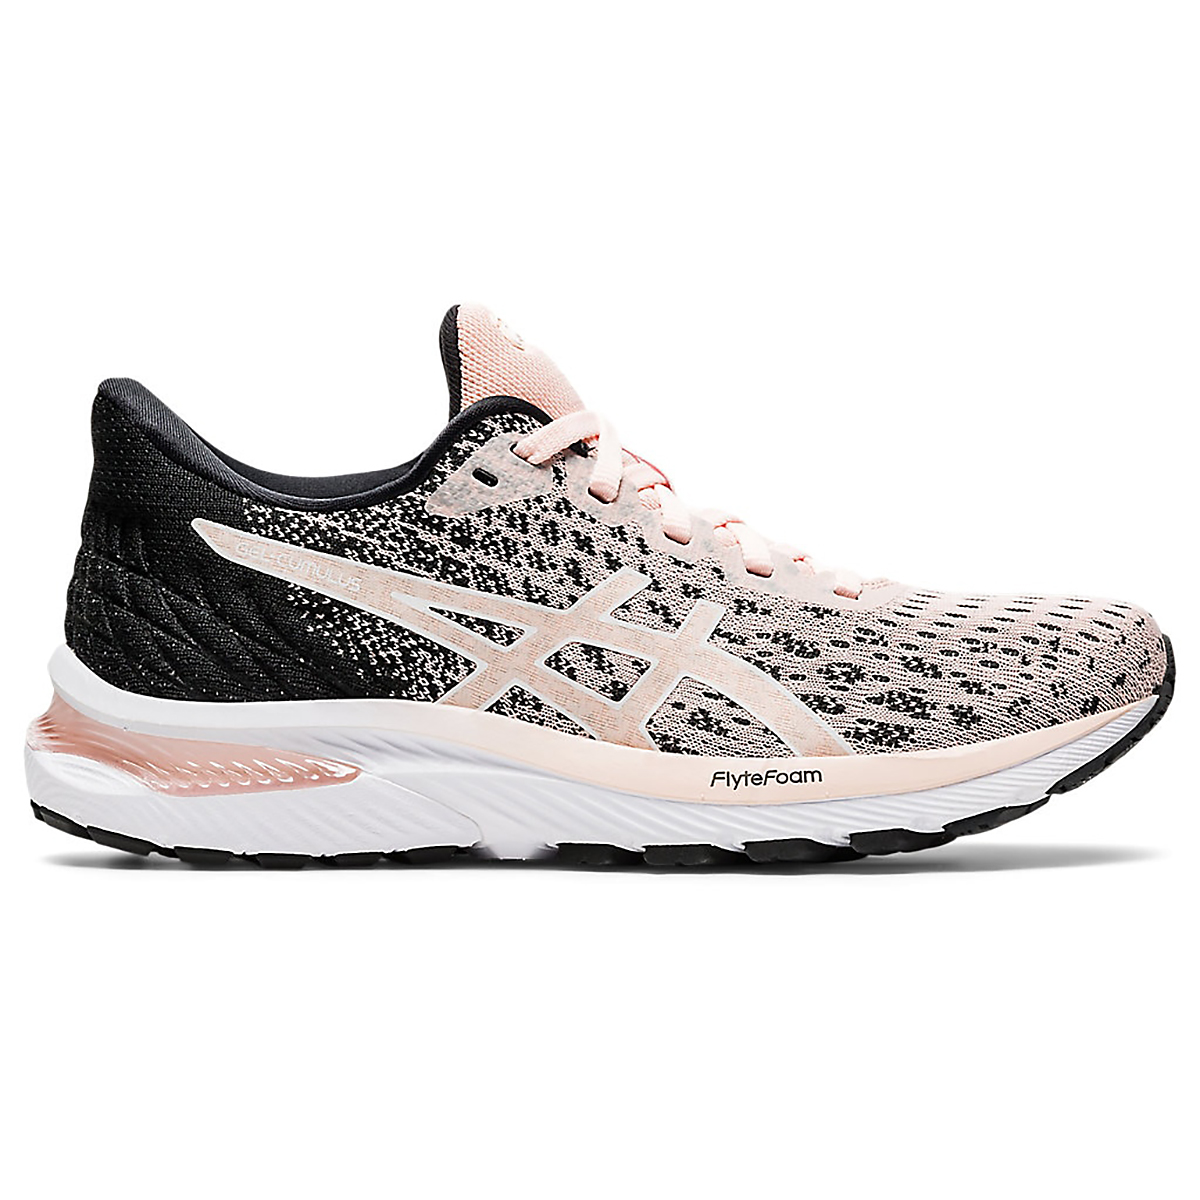 Women's Asics Gel-Cumulus 22 Knit Running Shoe - Color: Breeze/Black - Size: 5 - Width: Regular, Breeze/Black, large, image 1